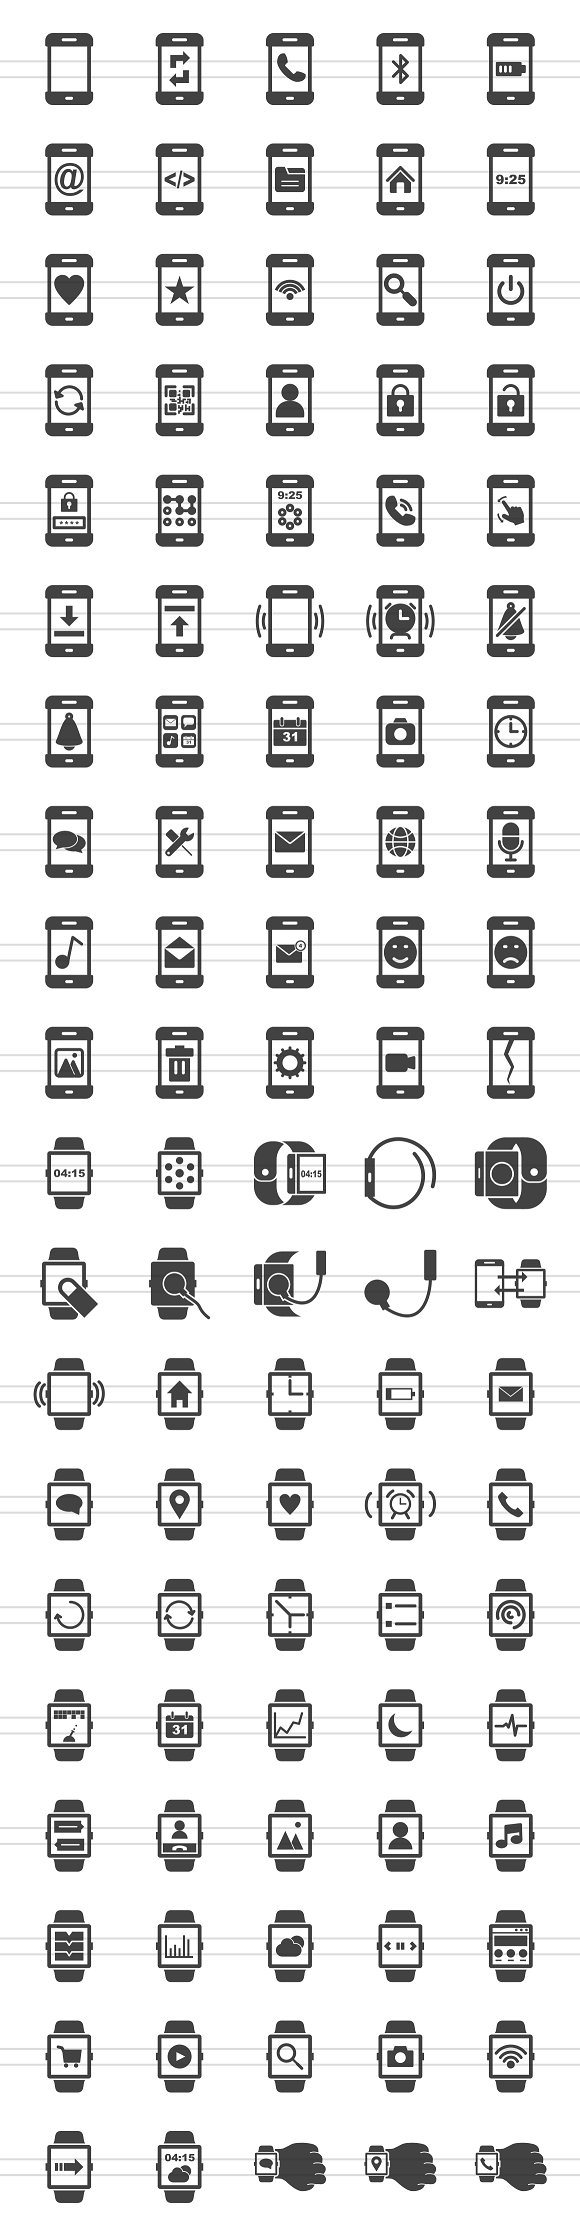 100 Smartphone & Watch Glyph Icons in Icons - product preview 1